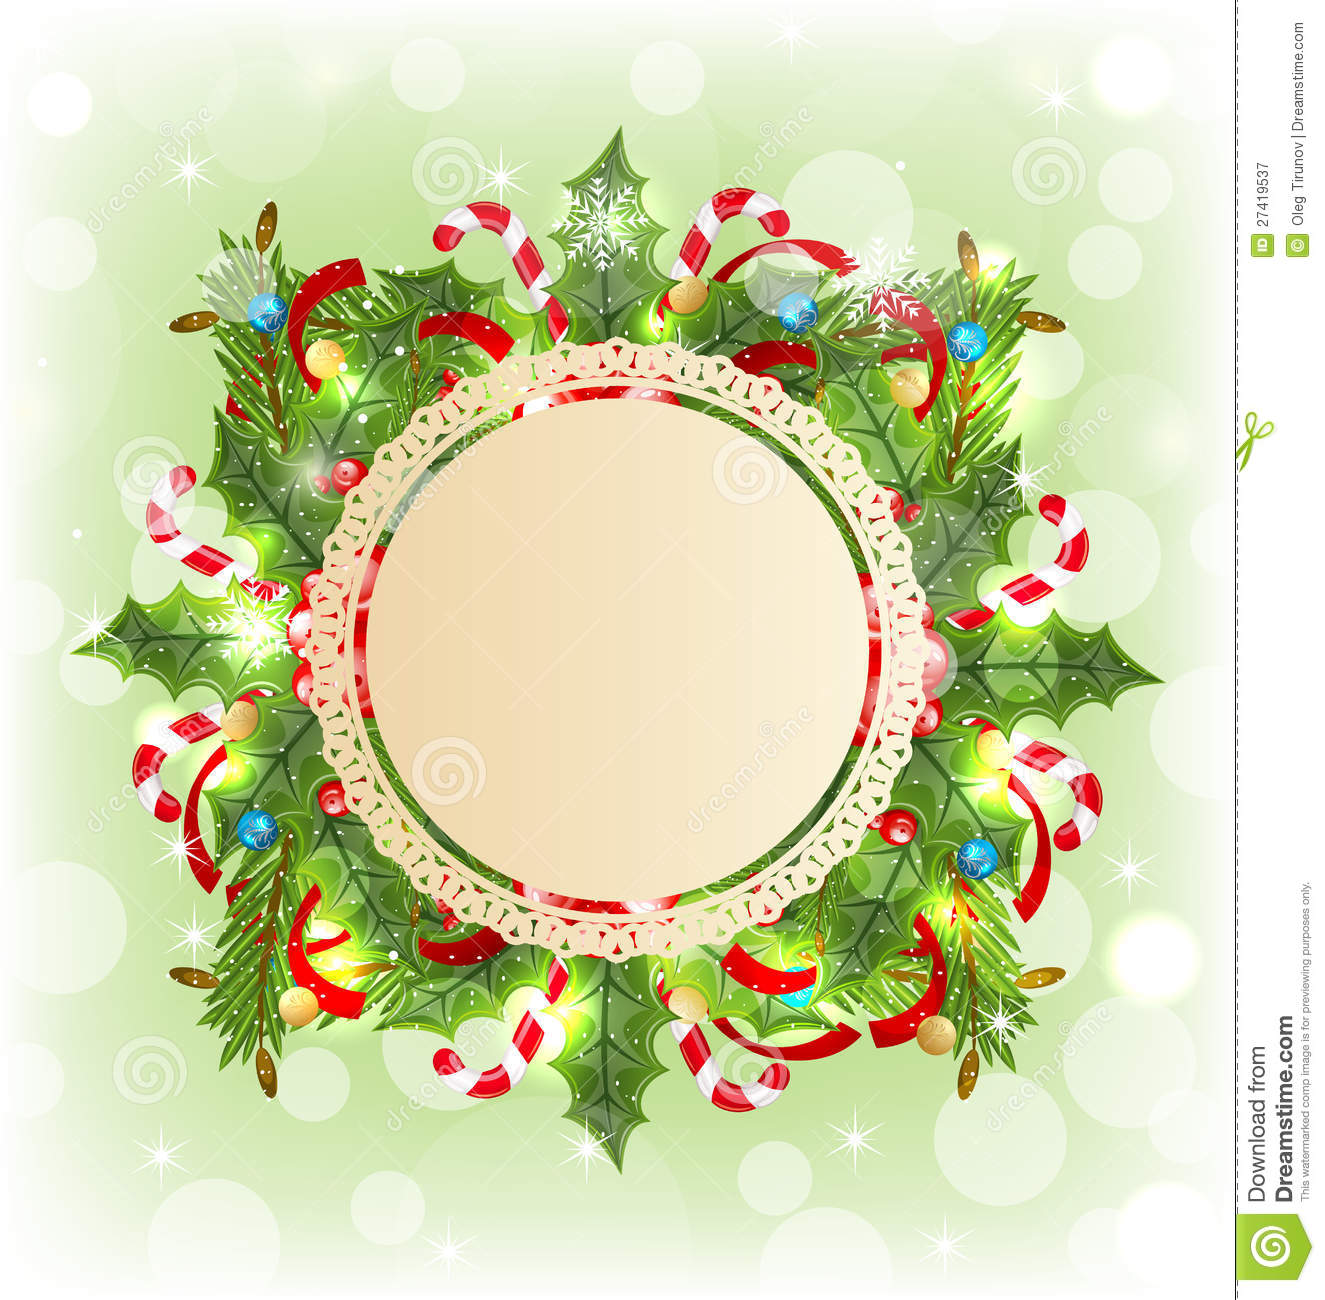 Christmas holiday decoration with greeting card stock vector christmas holiday decoration with greeting card kristyandbryce Image collections